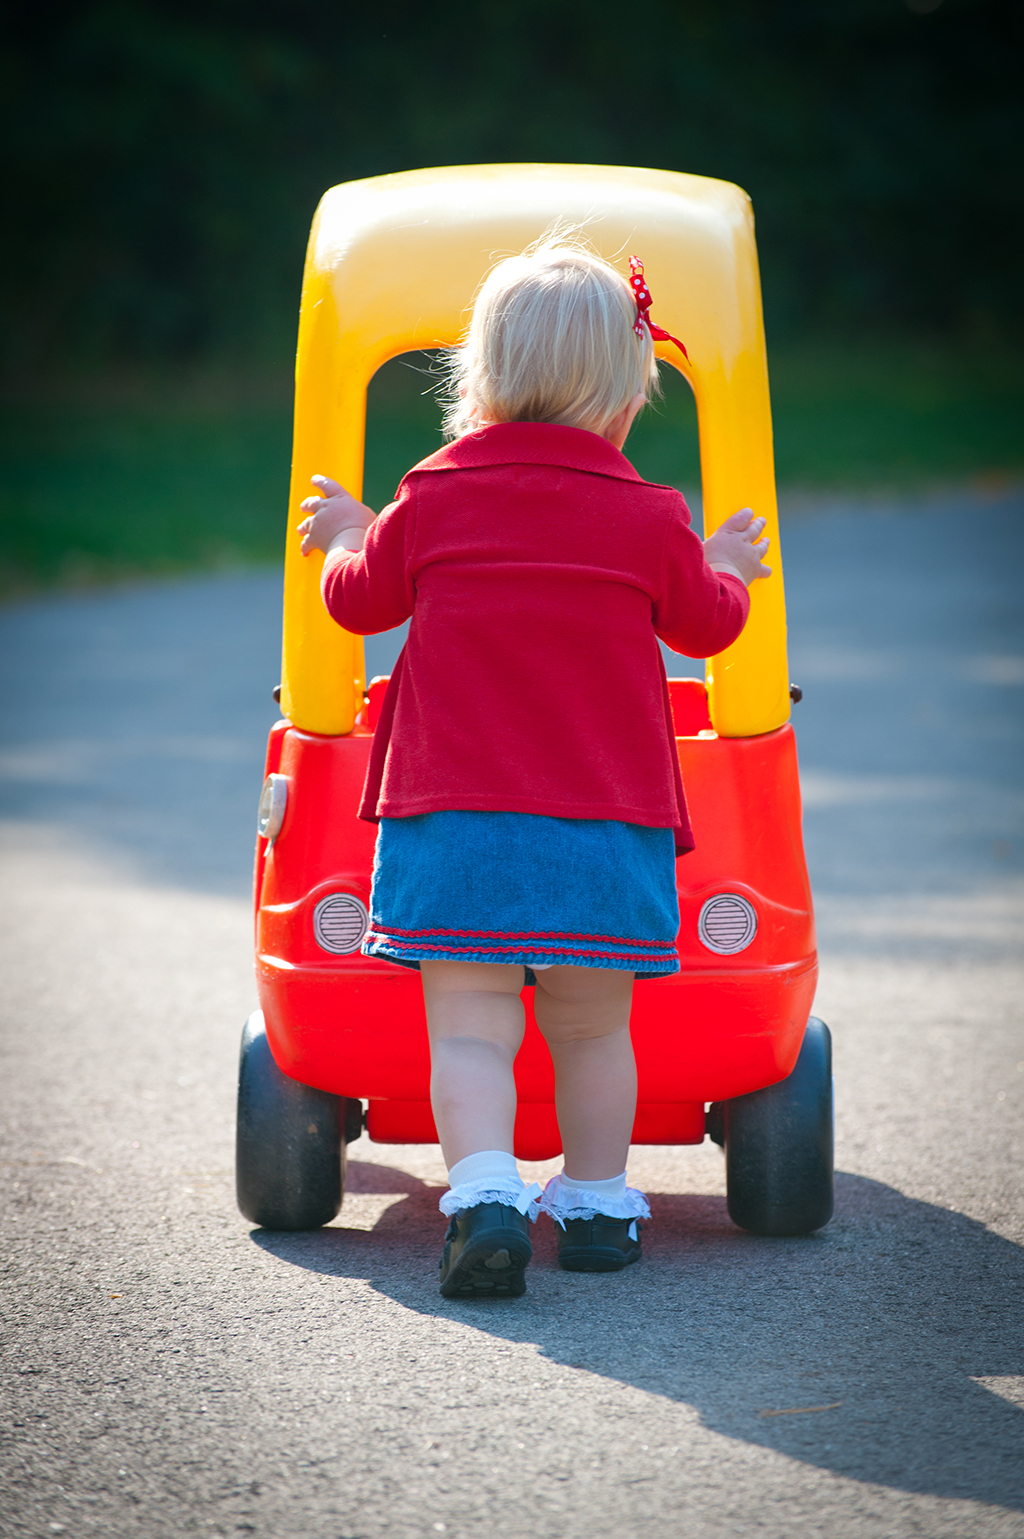 It's easy to donate your vehicle to RMHC of Idaho